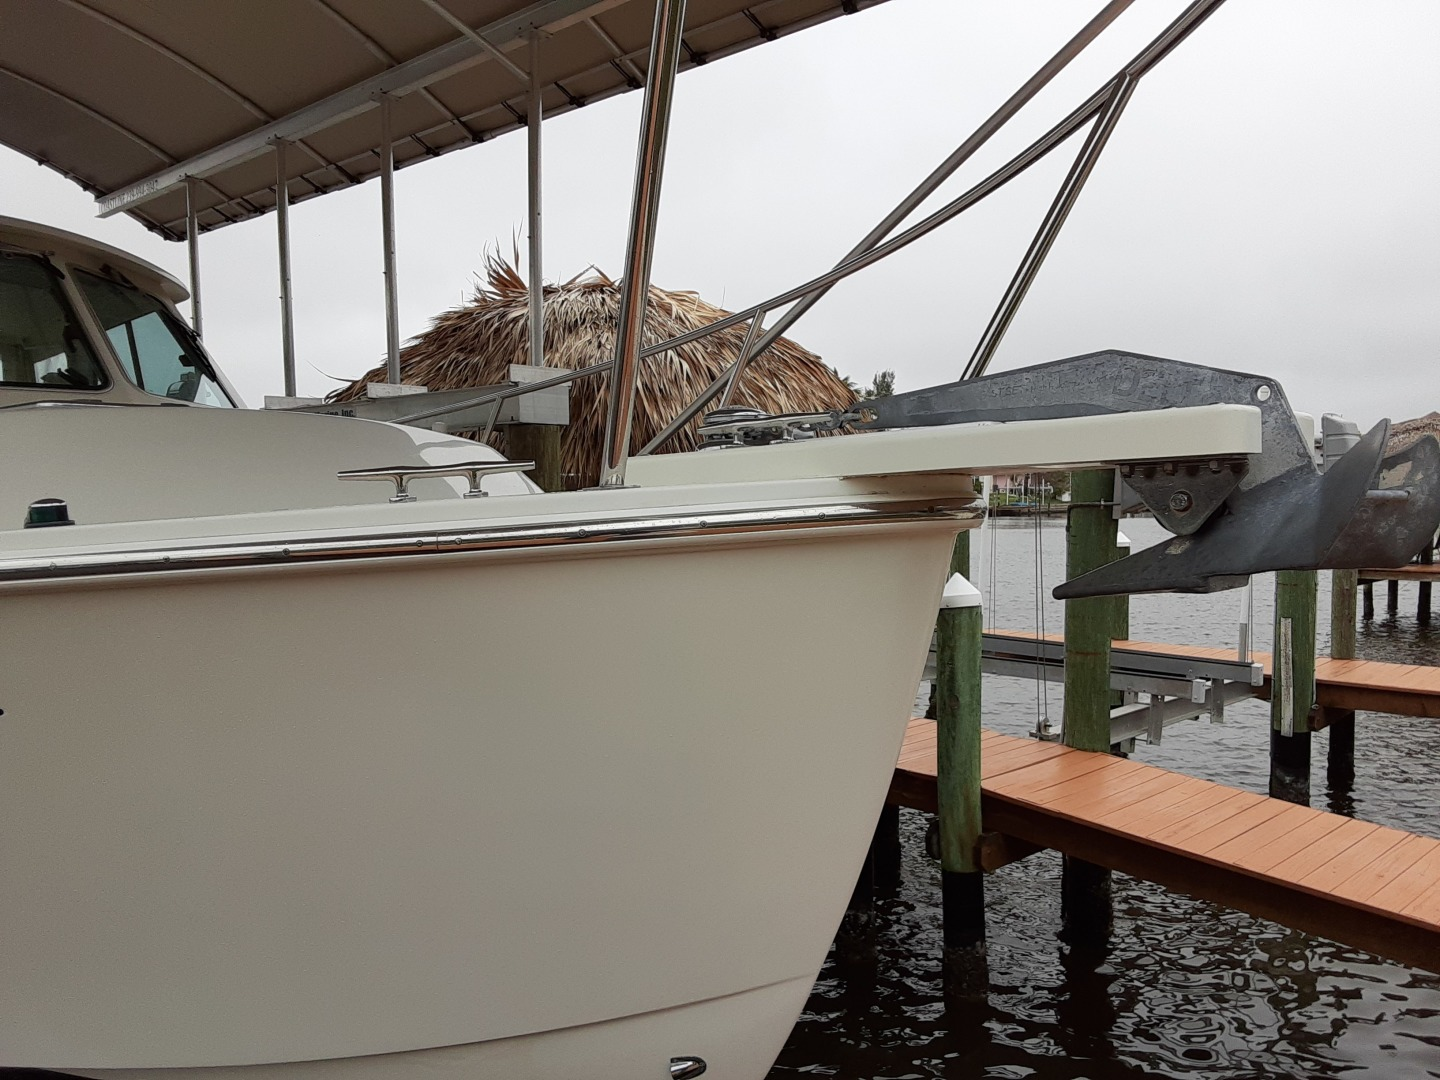 Back Cove-Express 2007-Patronus Cape Coral-Florida-United States-Starboard Bow-1341488 | Thumbnail